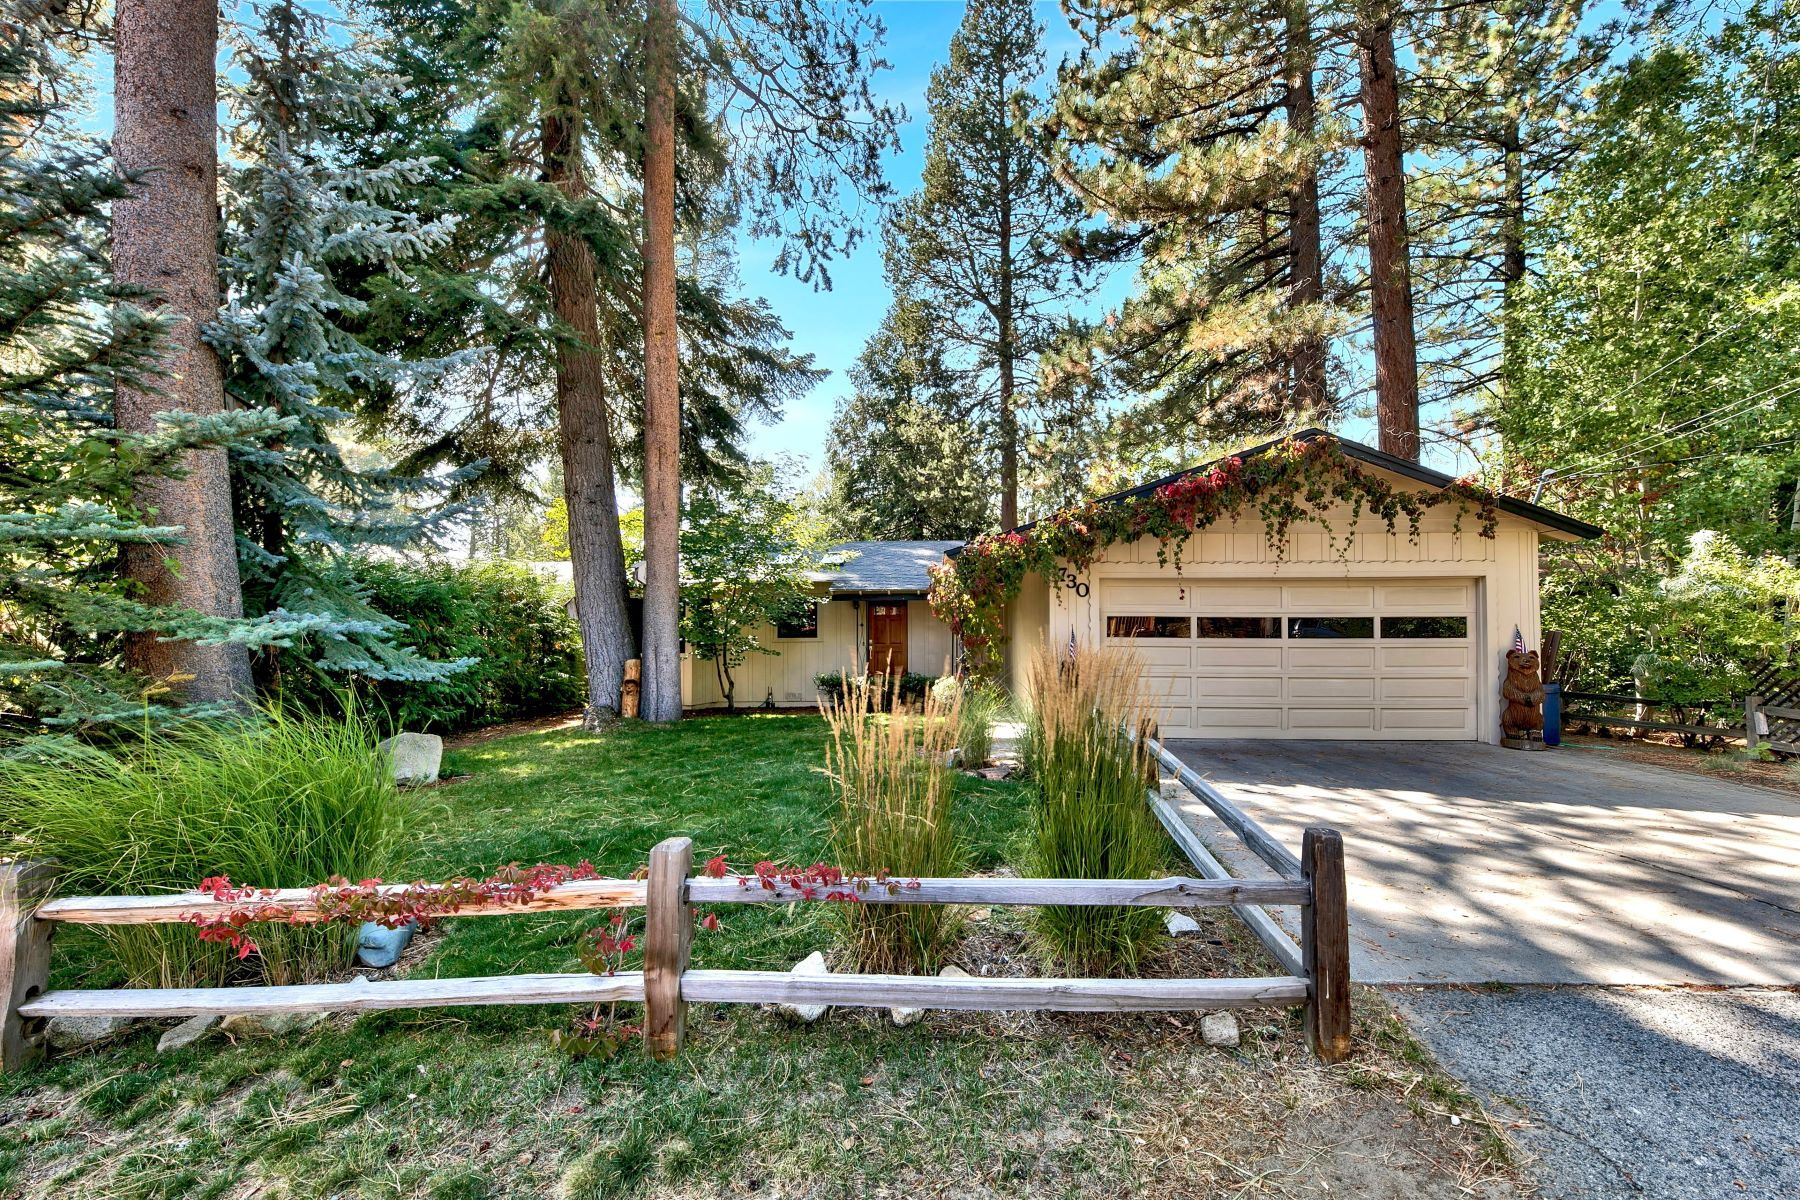 Property for Active at 730 Jeffery Street, South Lake Tahoe 730 Jeffery Street South Lake Tahoe, California 96150 United States